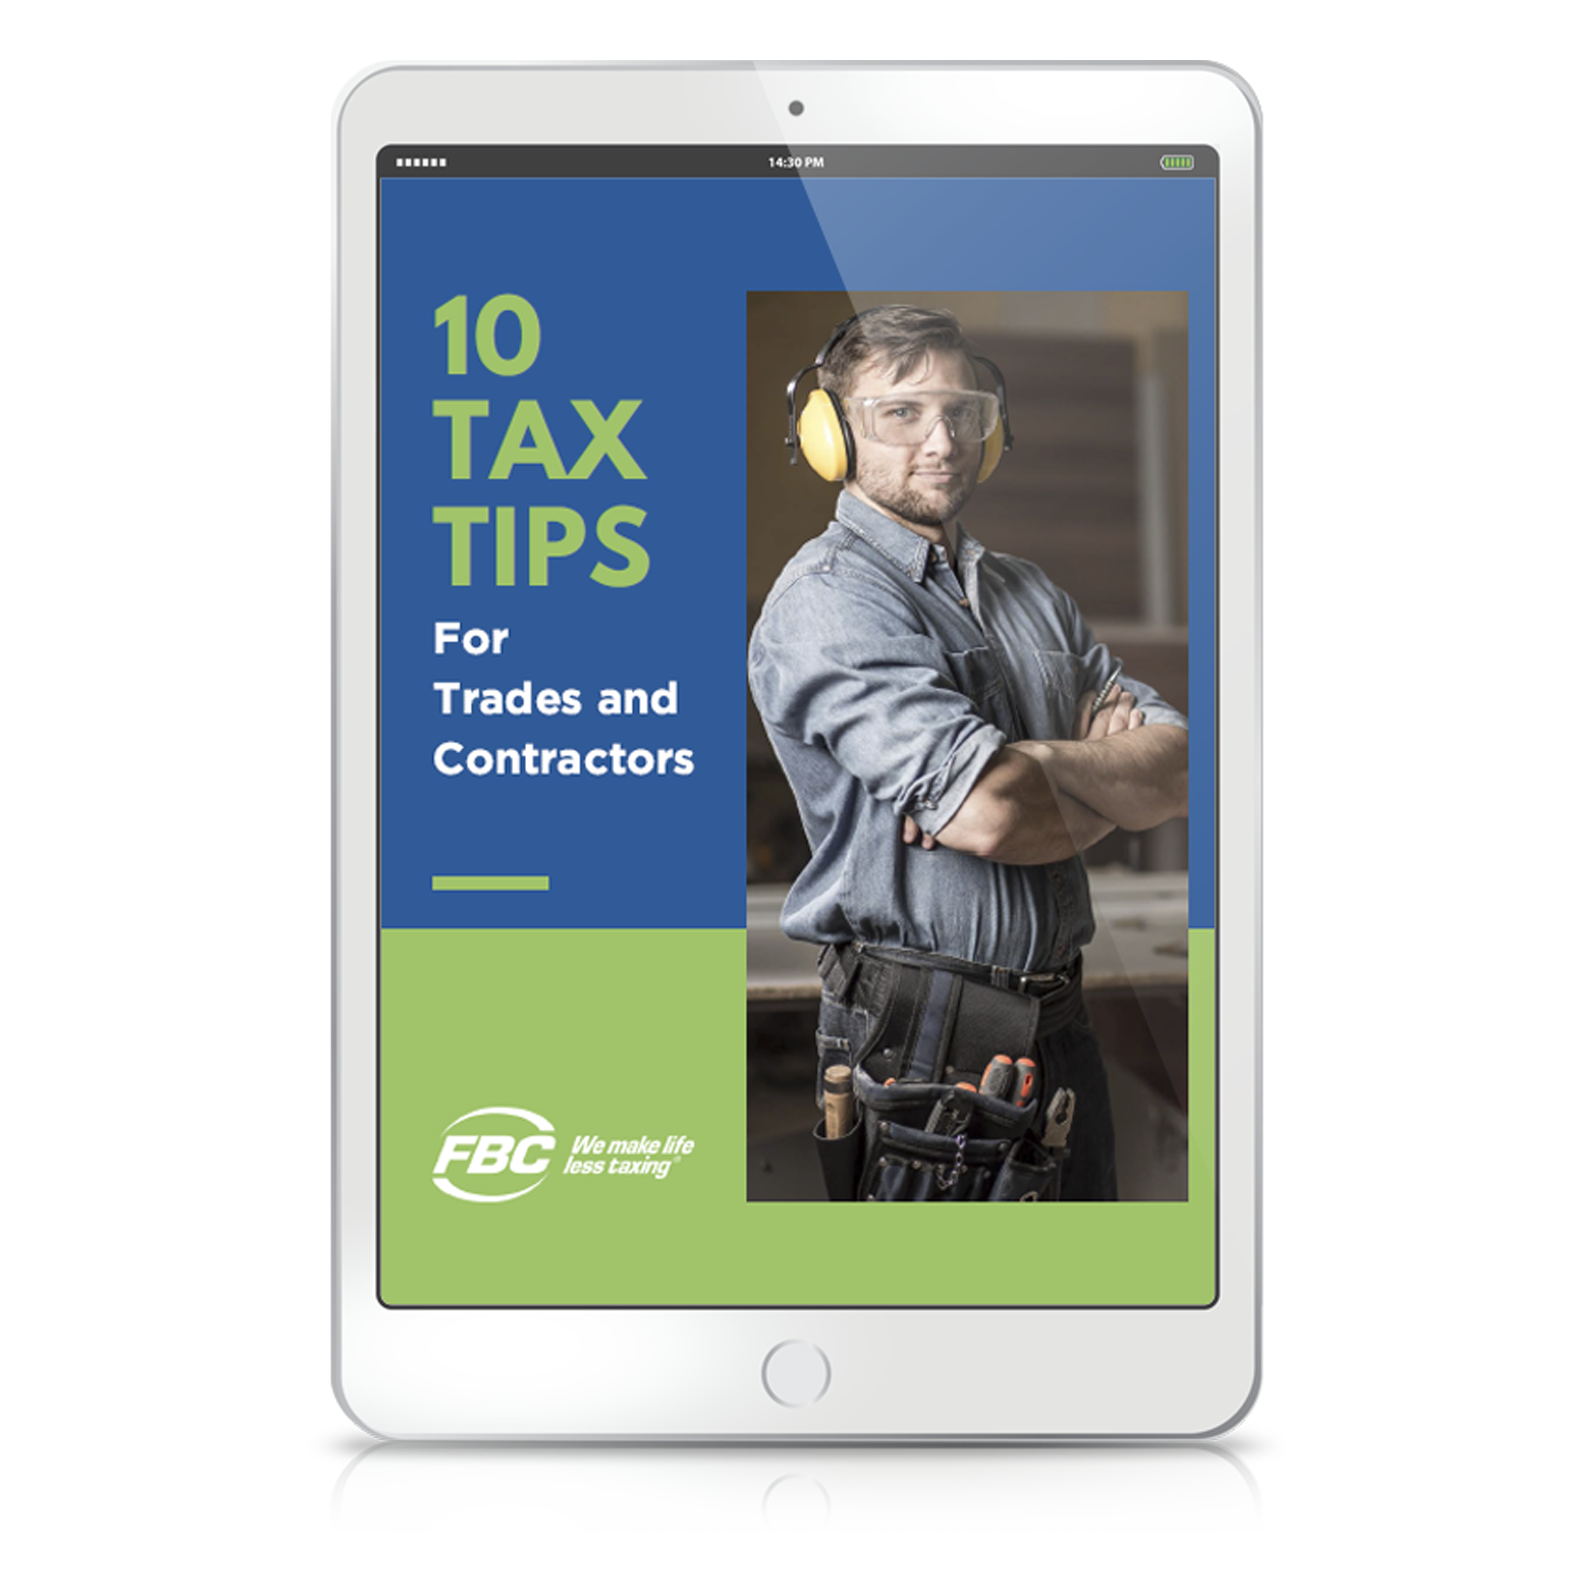 10 Tax Tips for Trades and Contractors